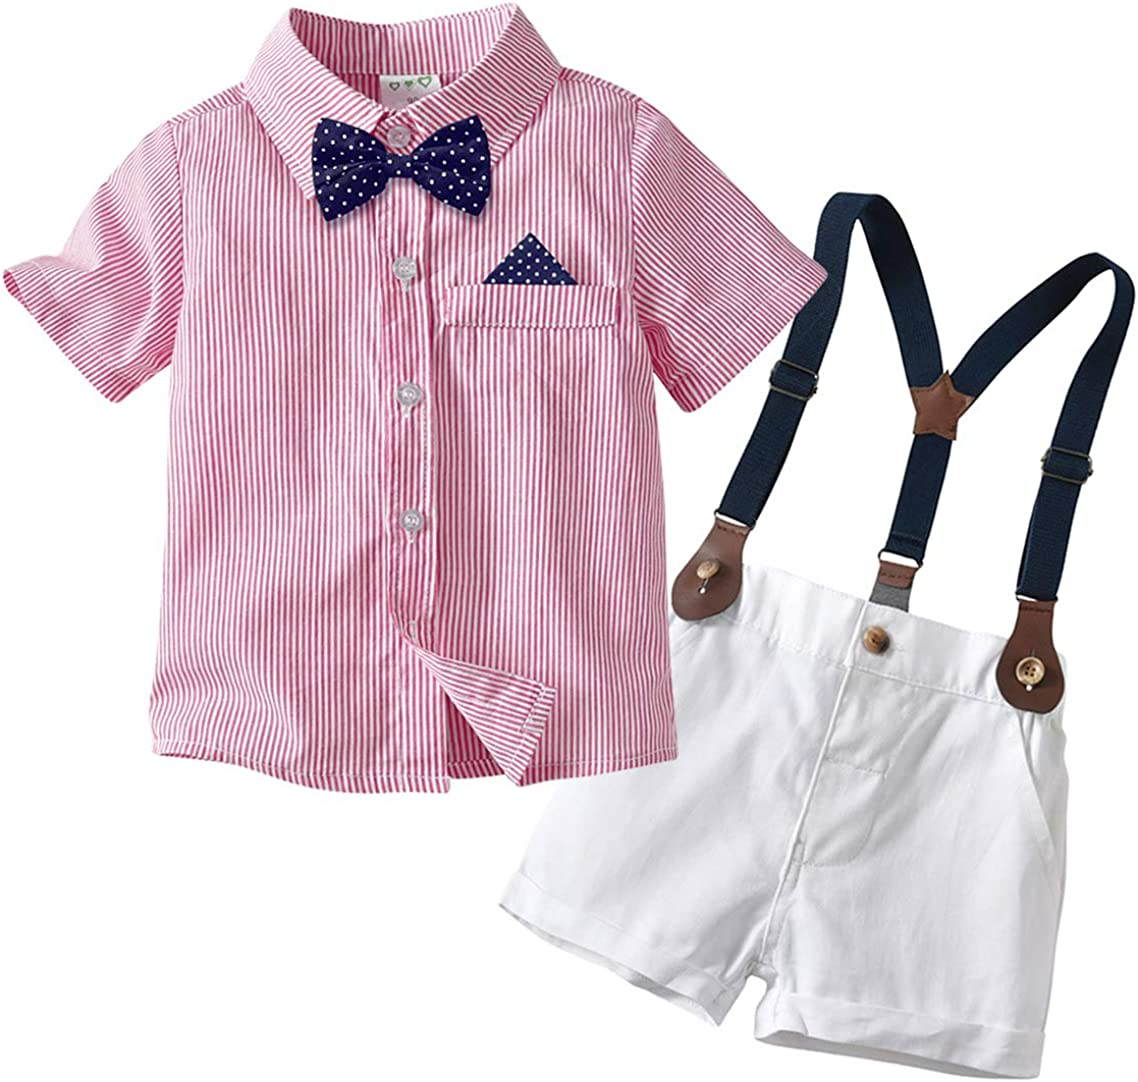 Overalls Shorts Pants Formal Outfit Set Summer Clothing Sets Toddler Baby Boys Gentleman Suit Bow Tie Lapel Shirt Tops